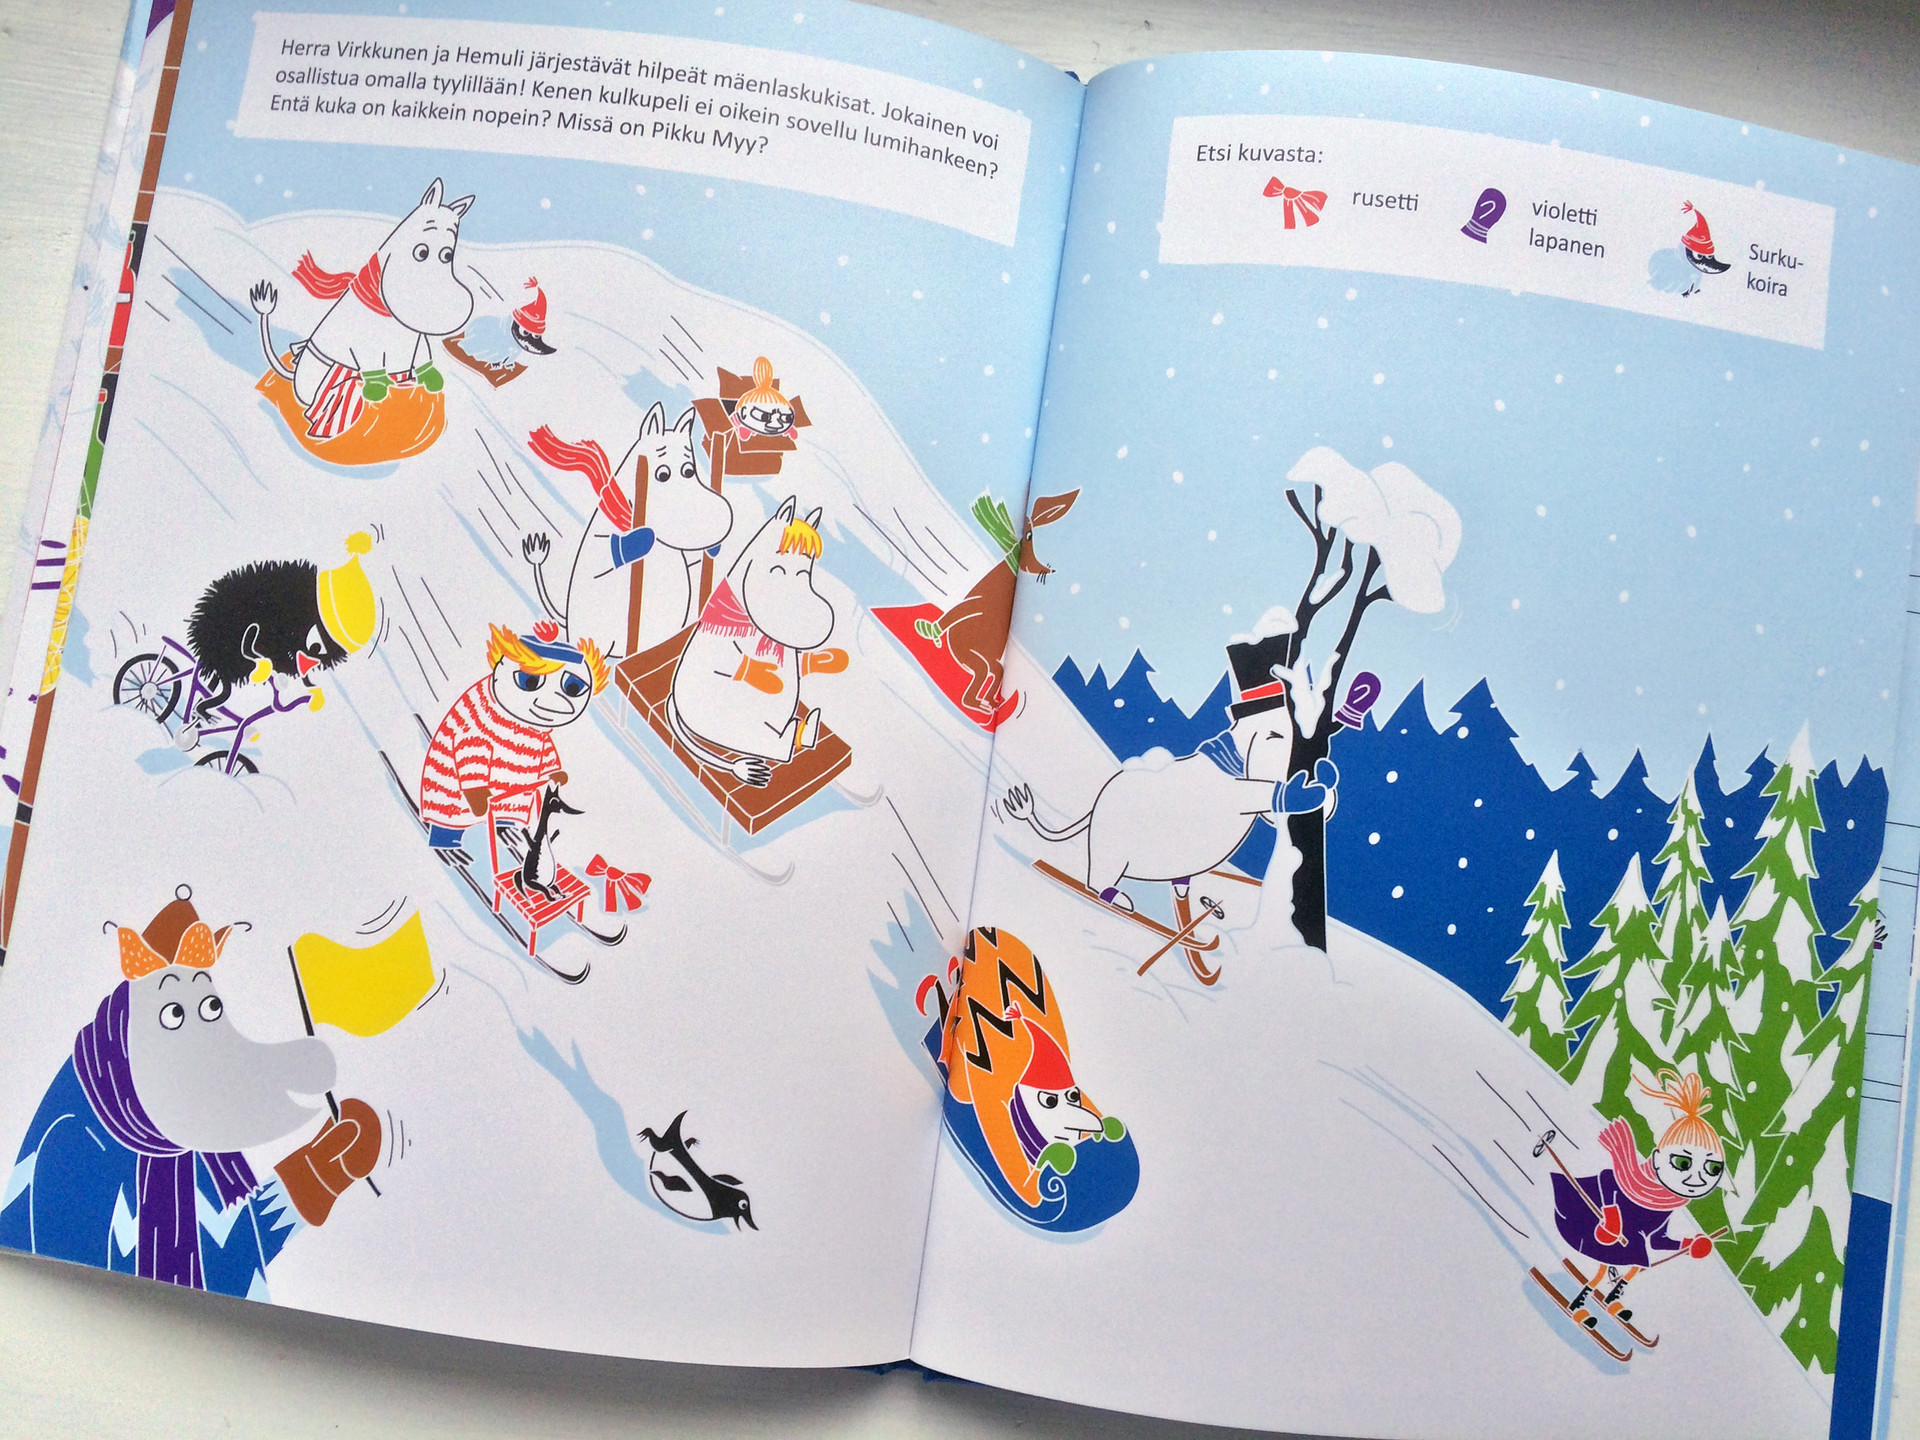 Moomin books (Illustration and layout), Tammi Publishers, 2013–2016